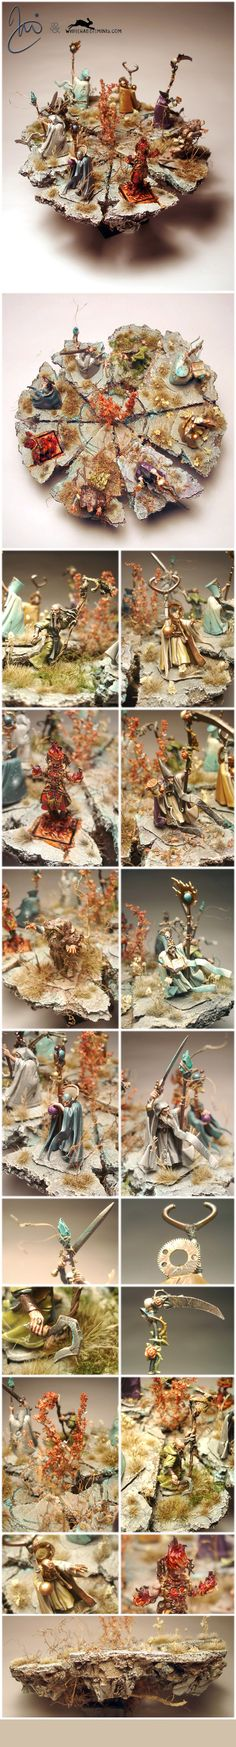 Ben Commission 2010: Winds Of Magic - The Eye Of The Storm! Eight Wizards Of The Empire...